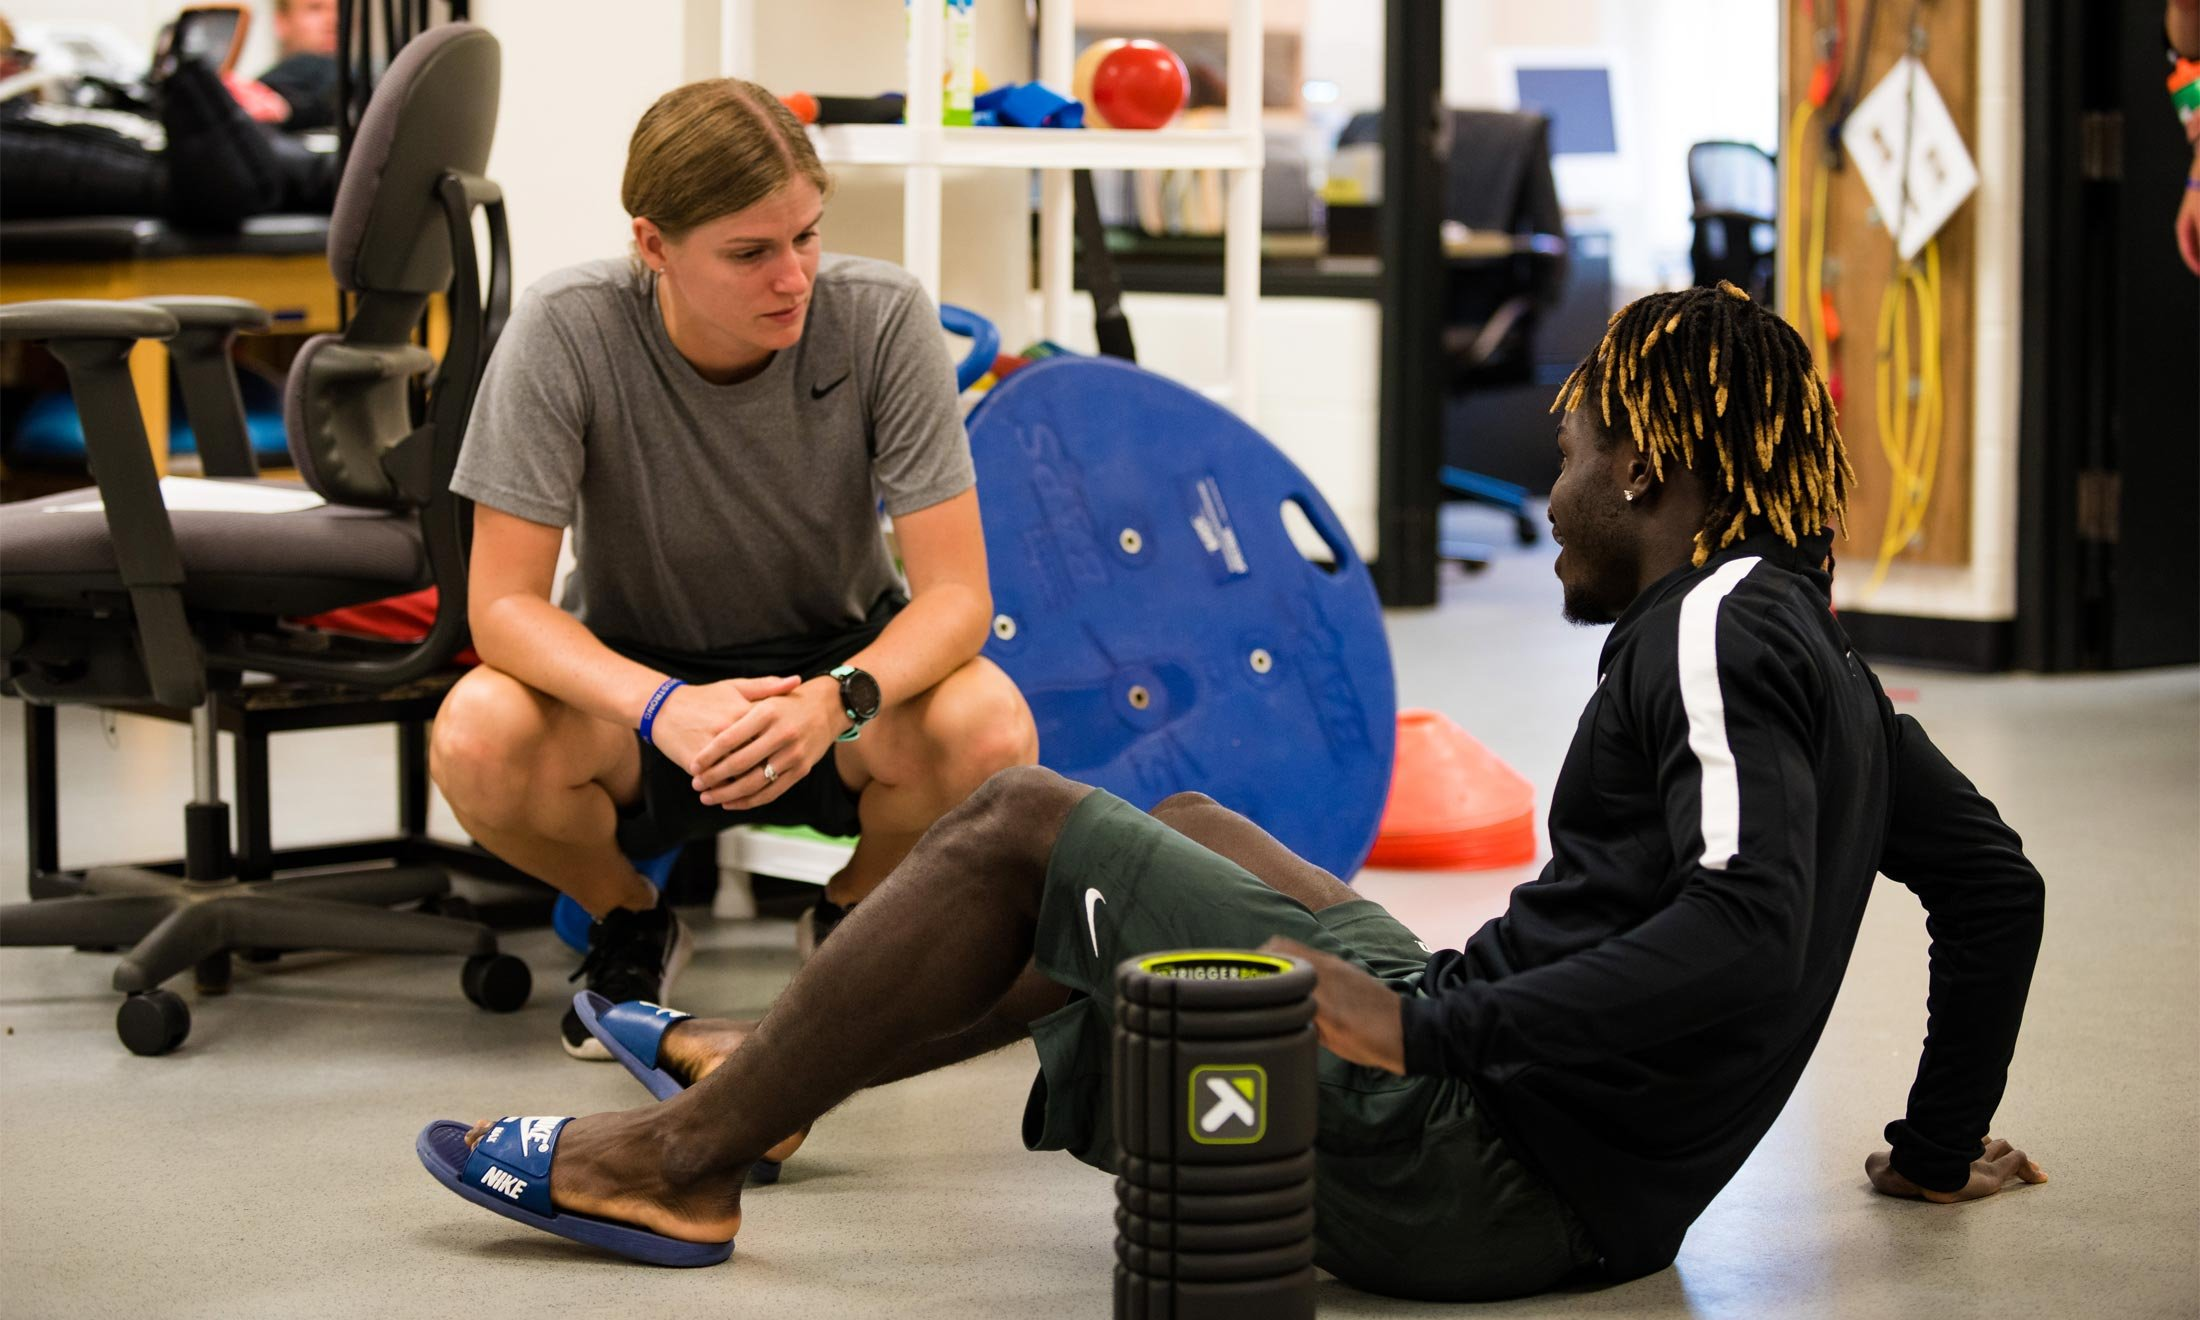 Oakland University soccer player Wilfred Williams sits on the floor to stretch while talking to an athletic trainer